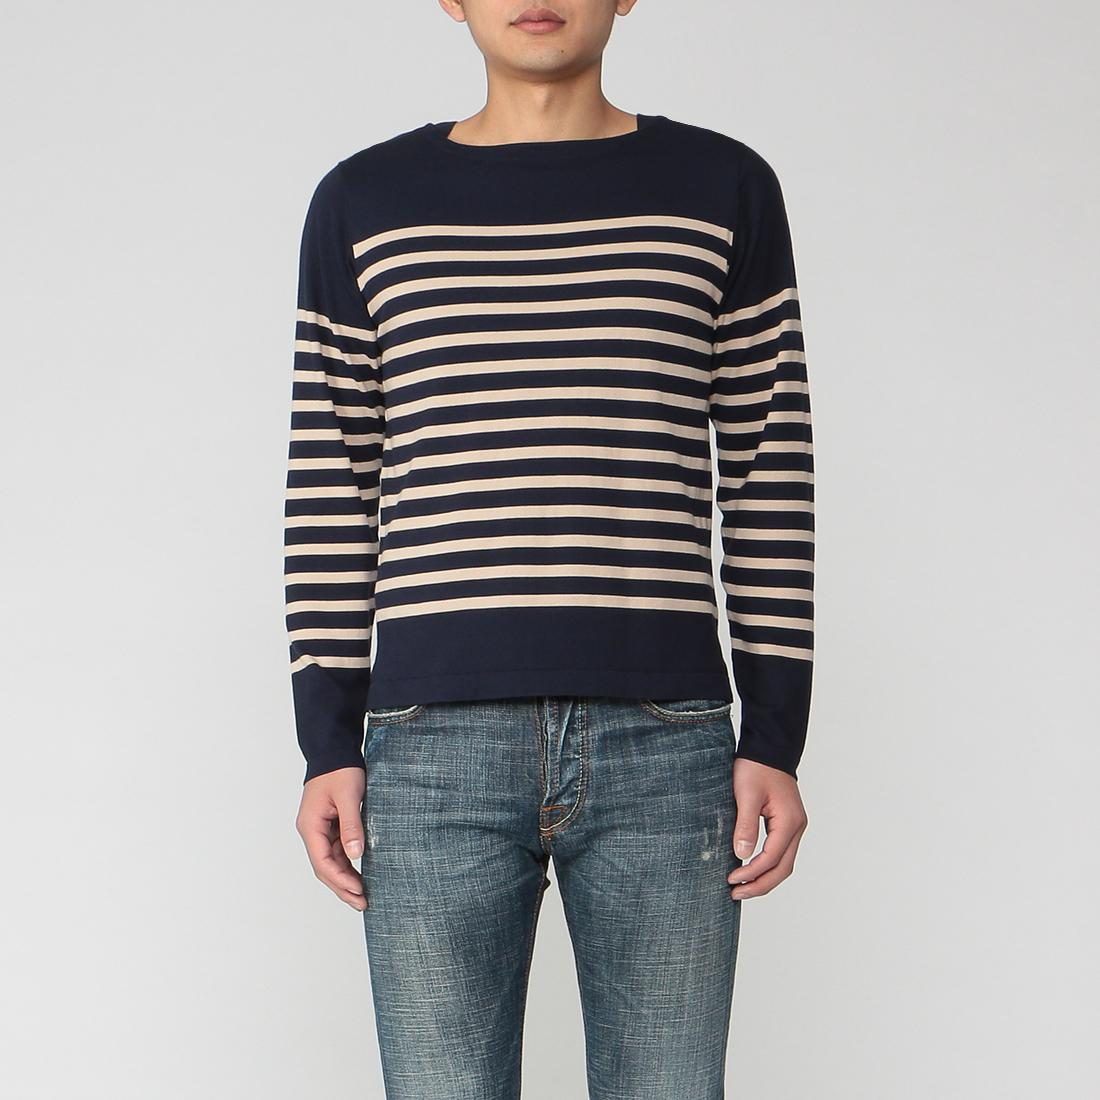 Barneys New York Cotton Stripe Boatneck Sweater 2014666: Navy